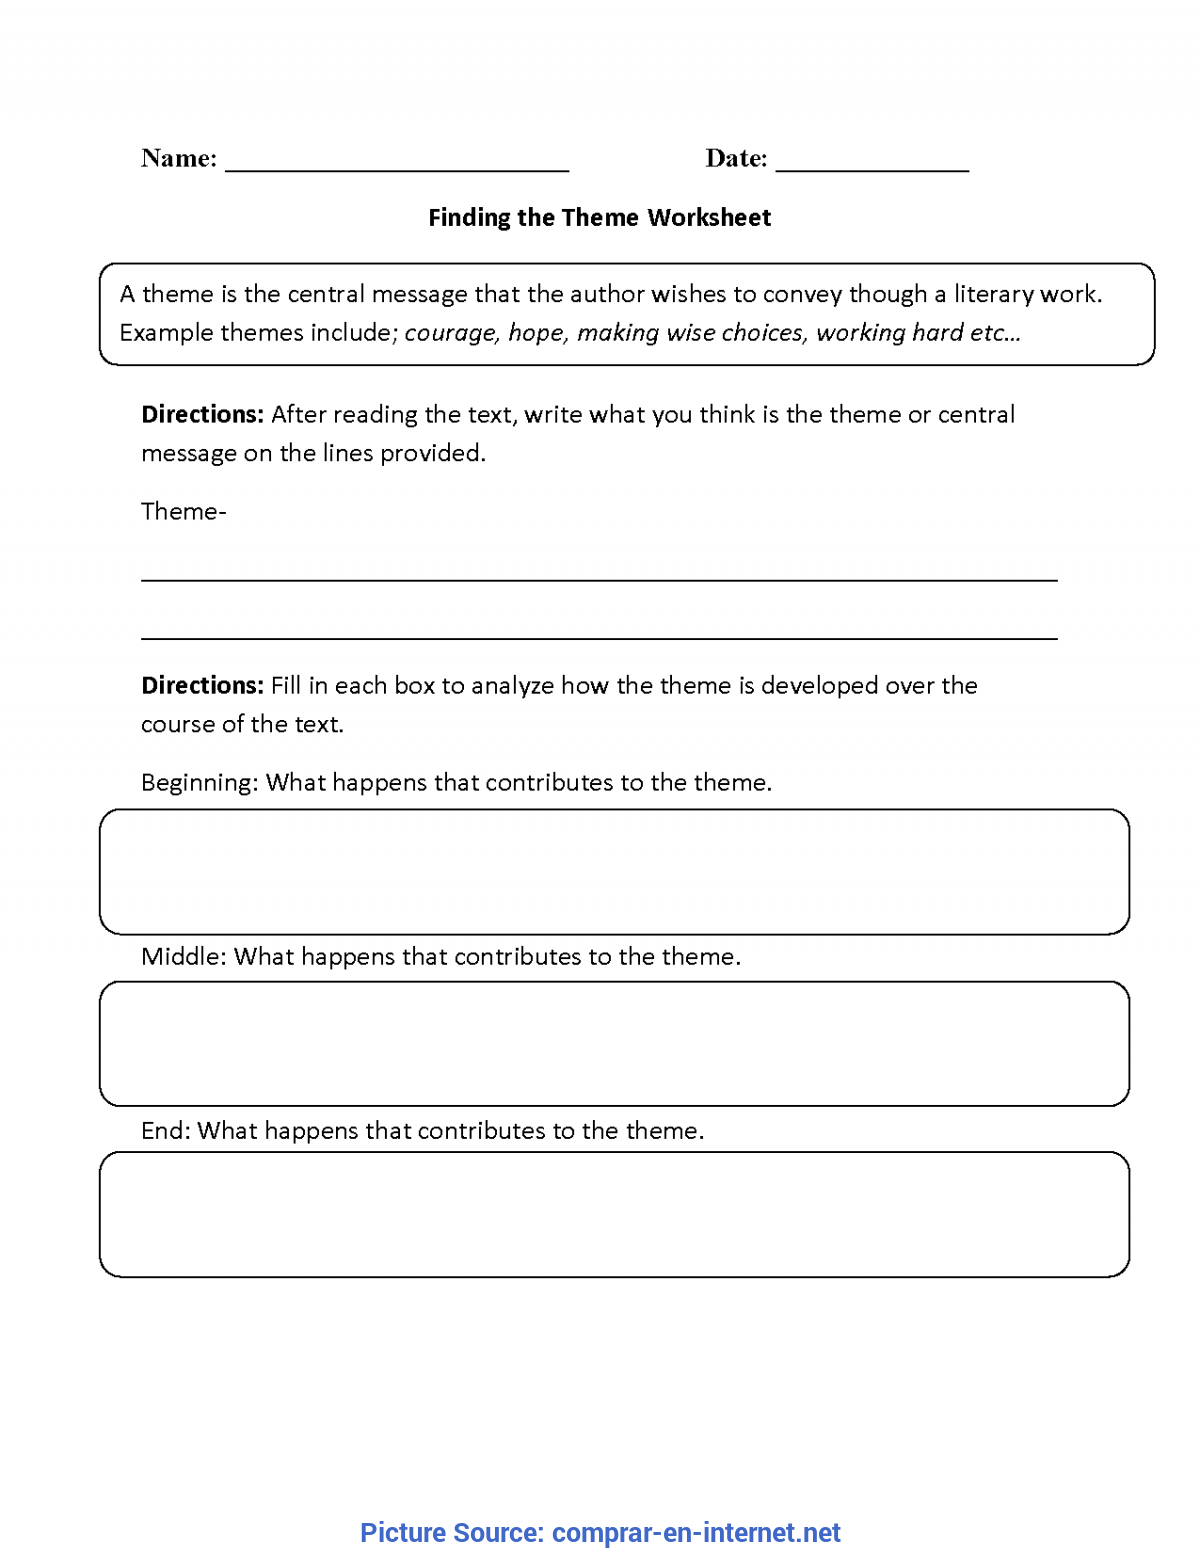 Typical 3Rd Grade Lesson Plans On Theme Theme Worksheets For 3Rd Grade Free Worksheets Library | Downloa